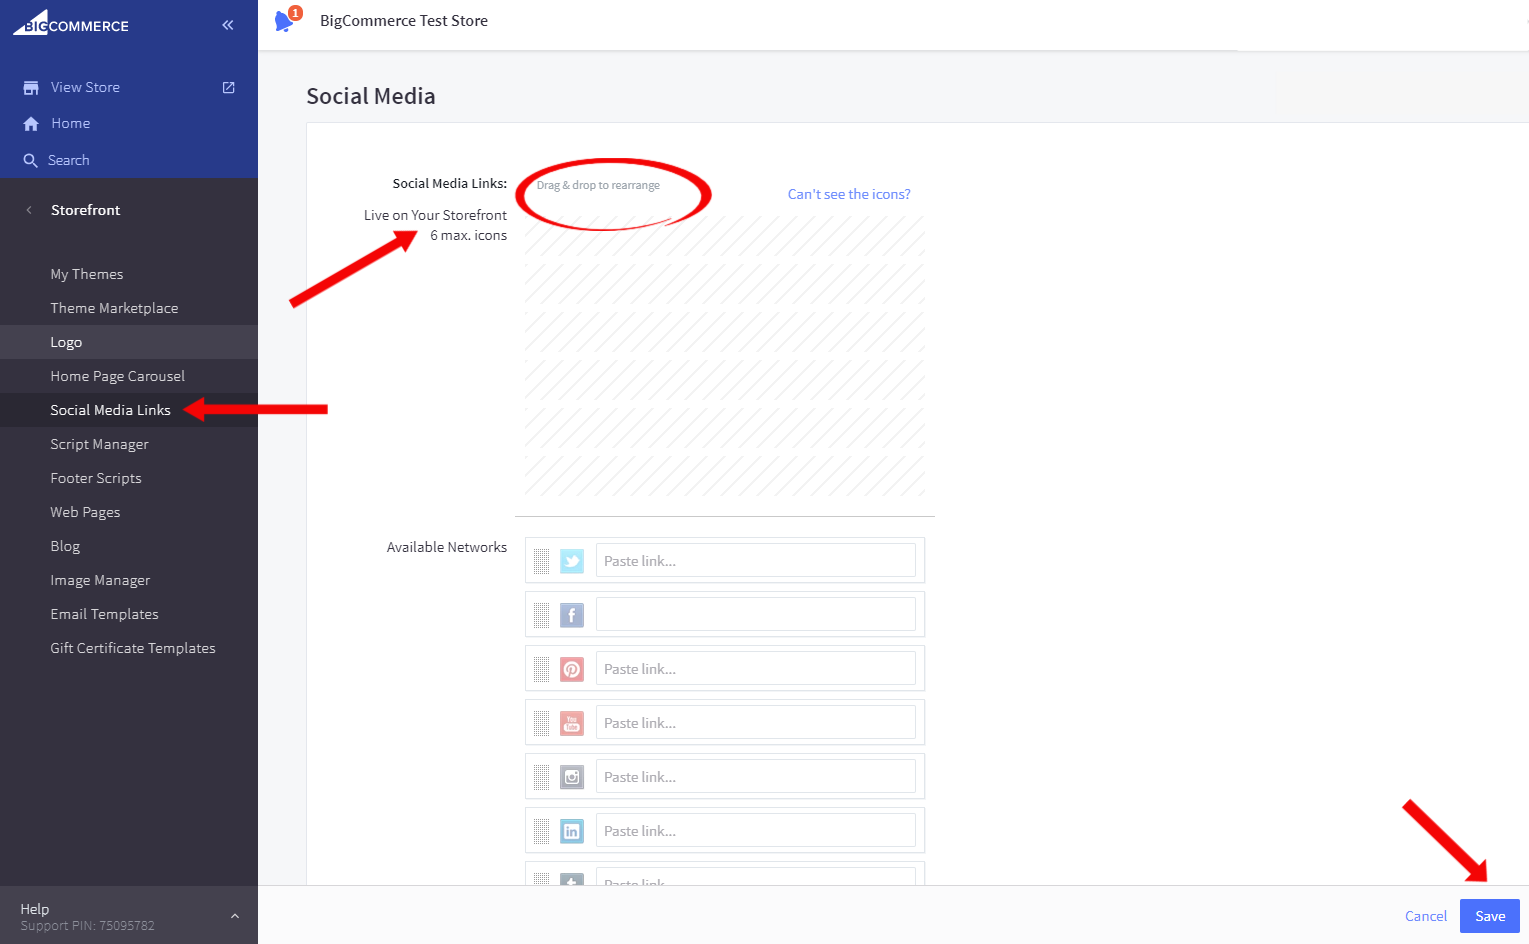 Guide on how to add social media links